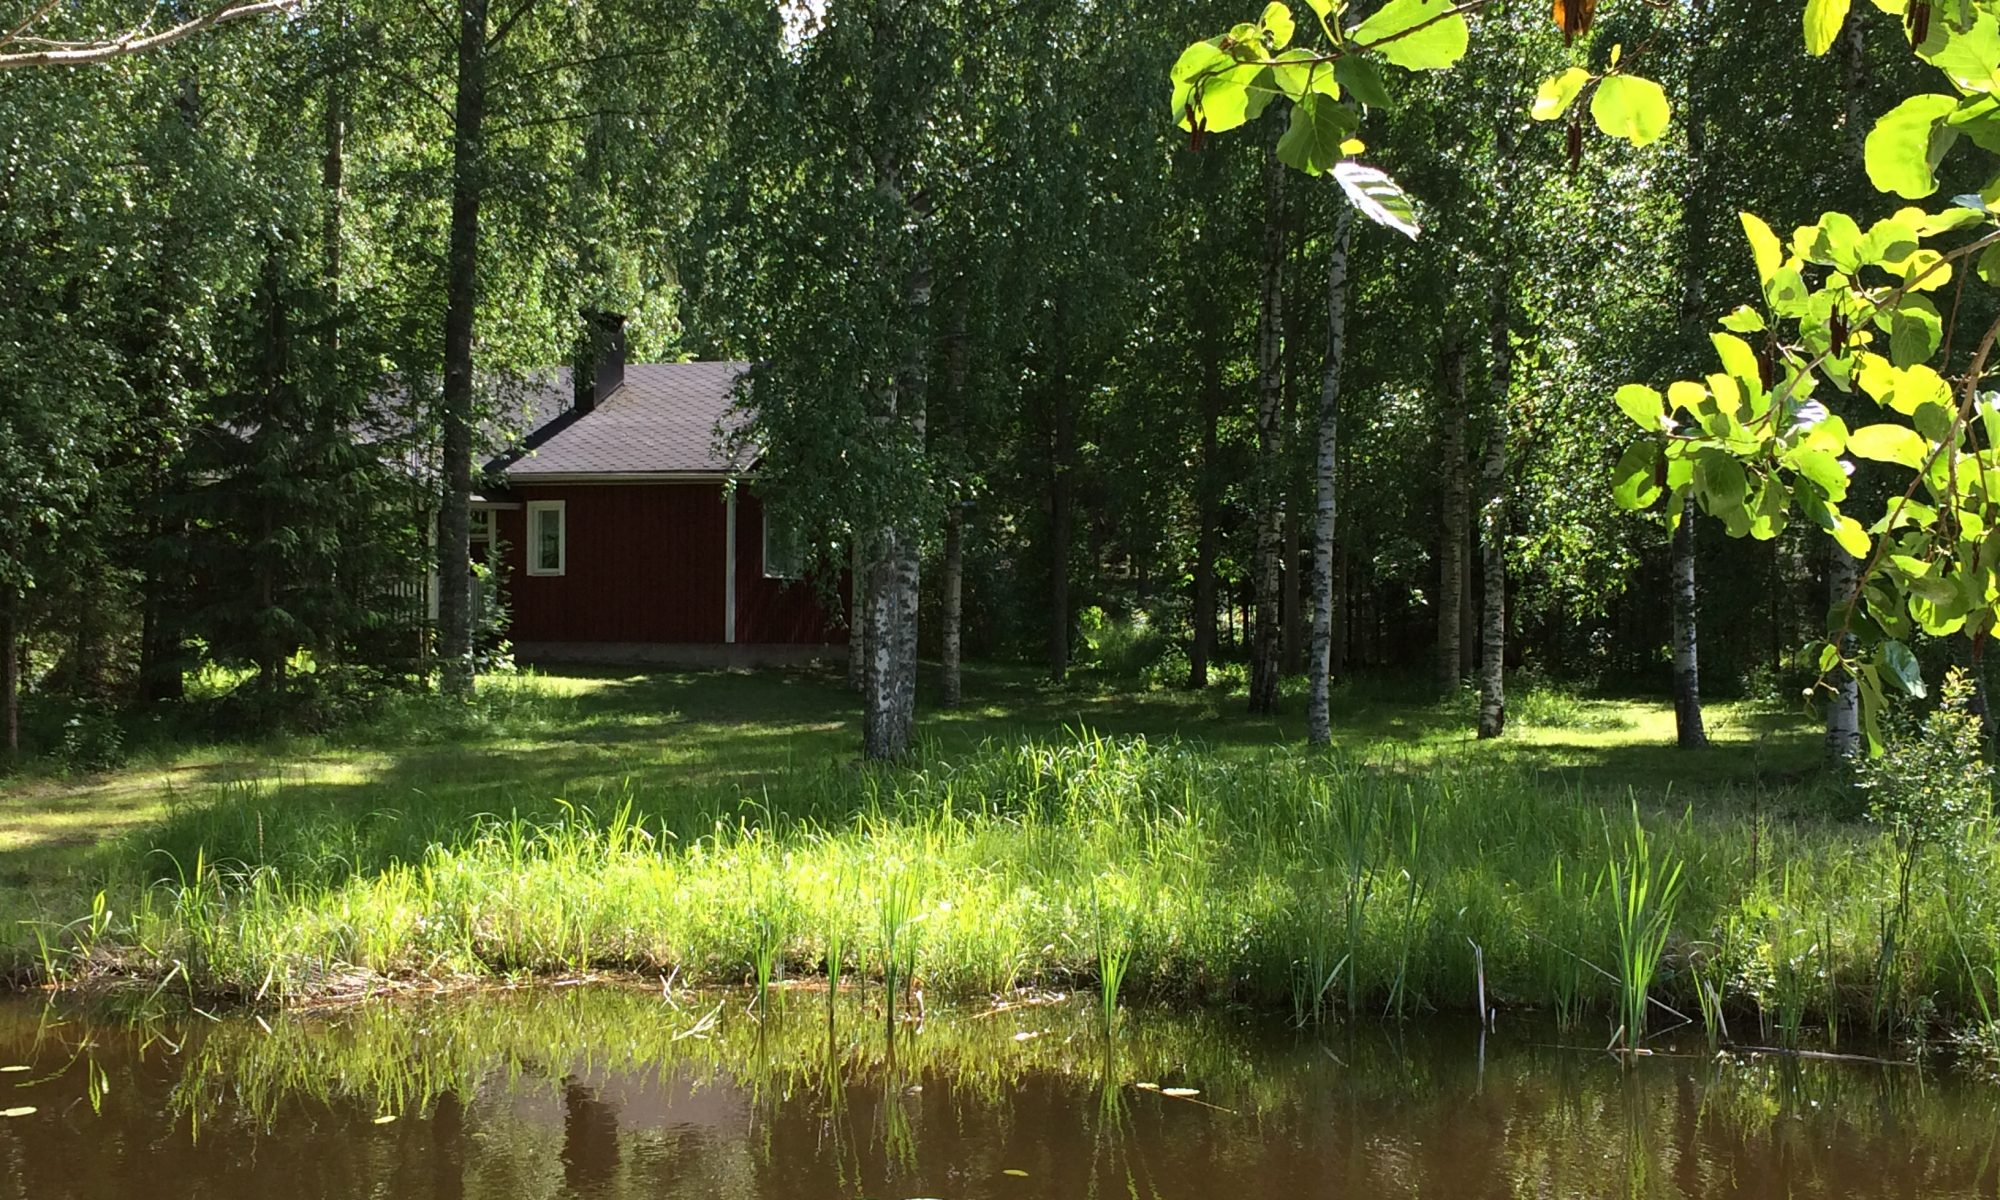 Aholanraitti holiday houses to rent by lake Finland